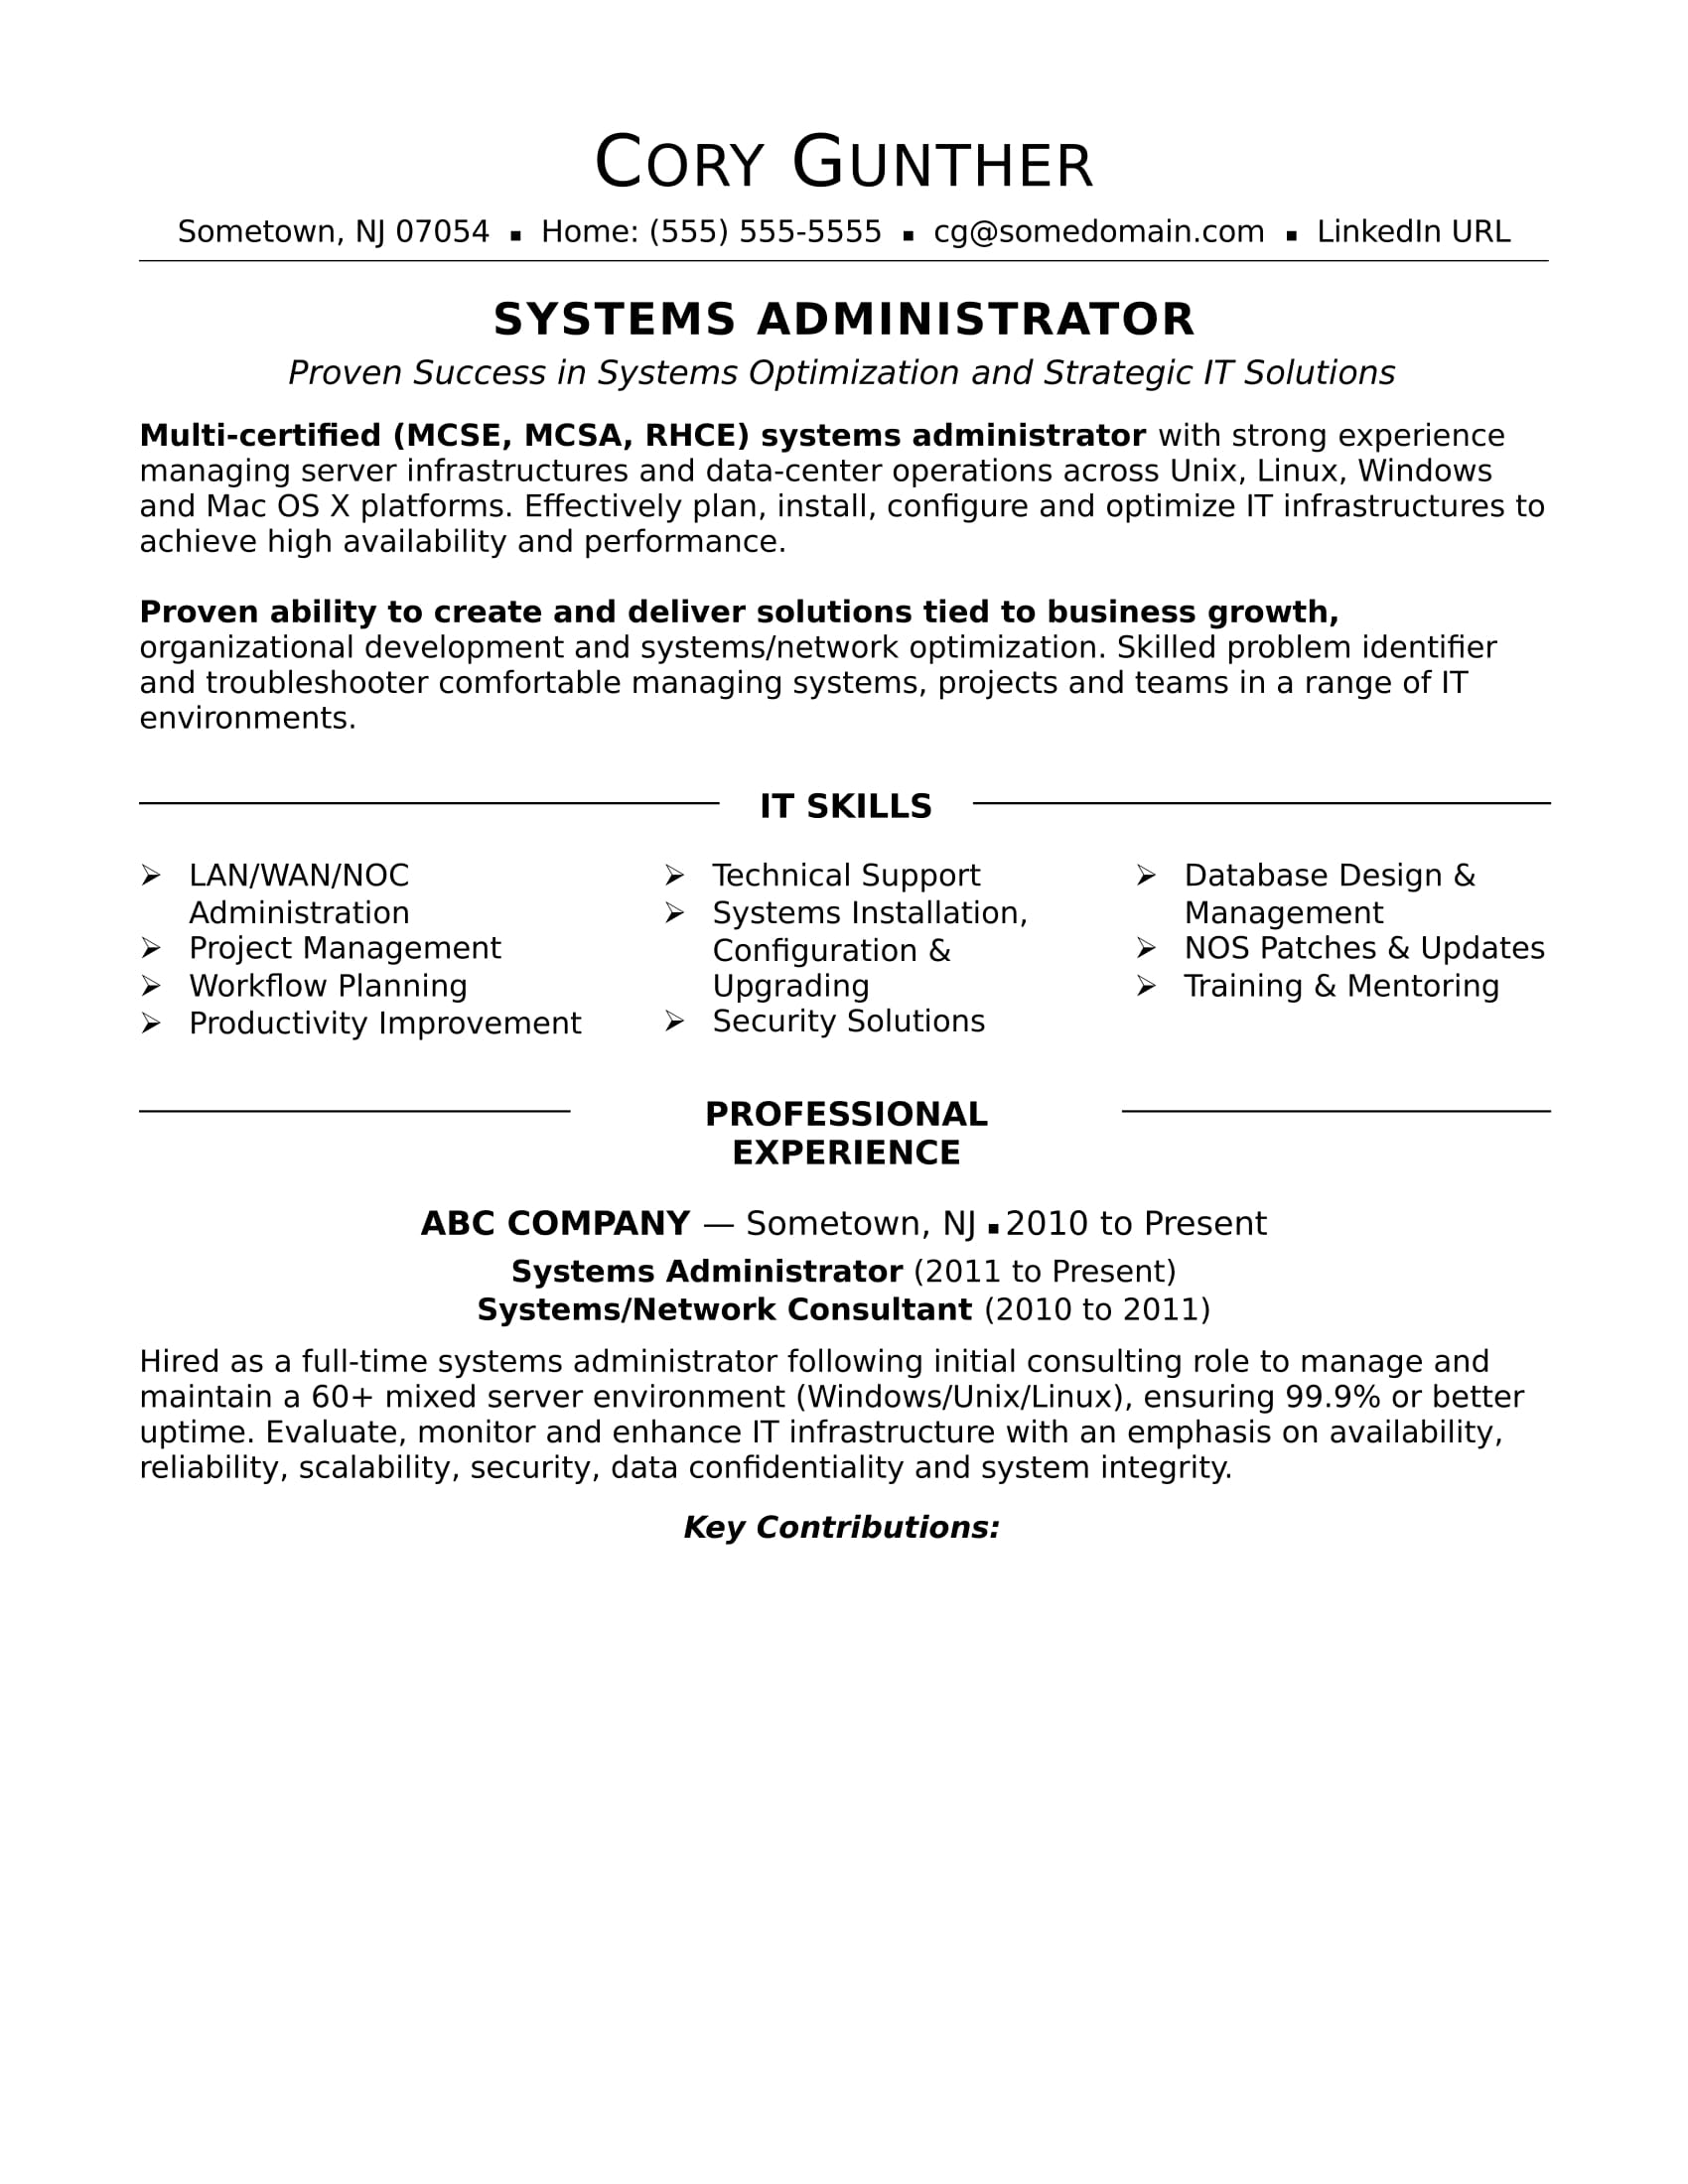 sample resume for an experienced systems administrator monster linux career change Resume Linux Administrator Resume